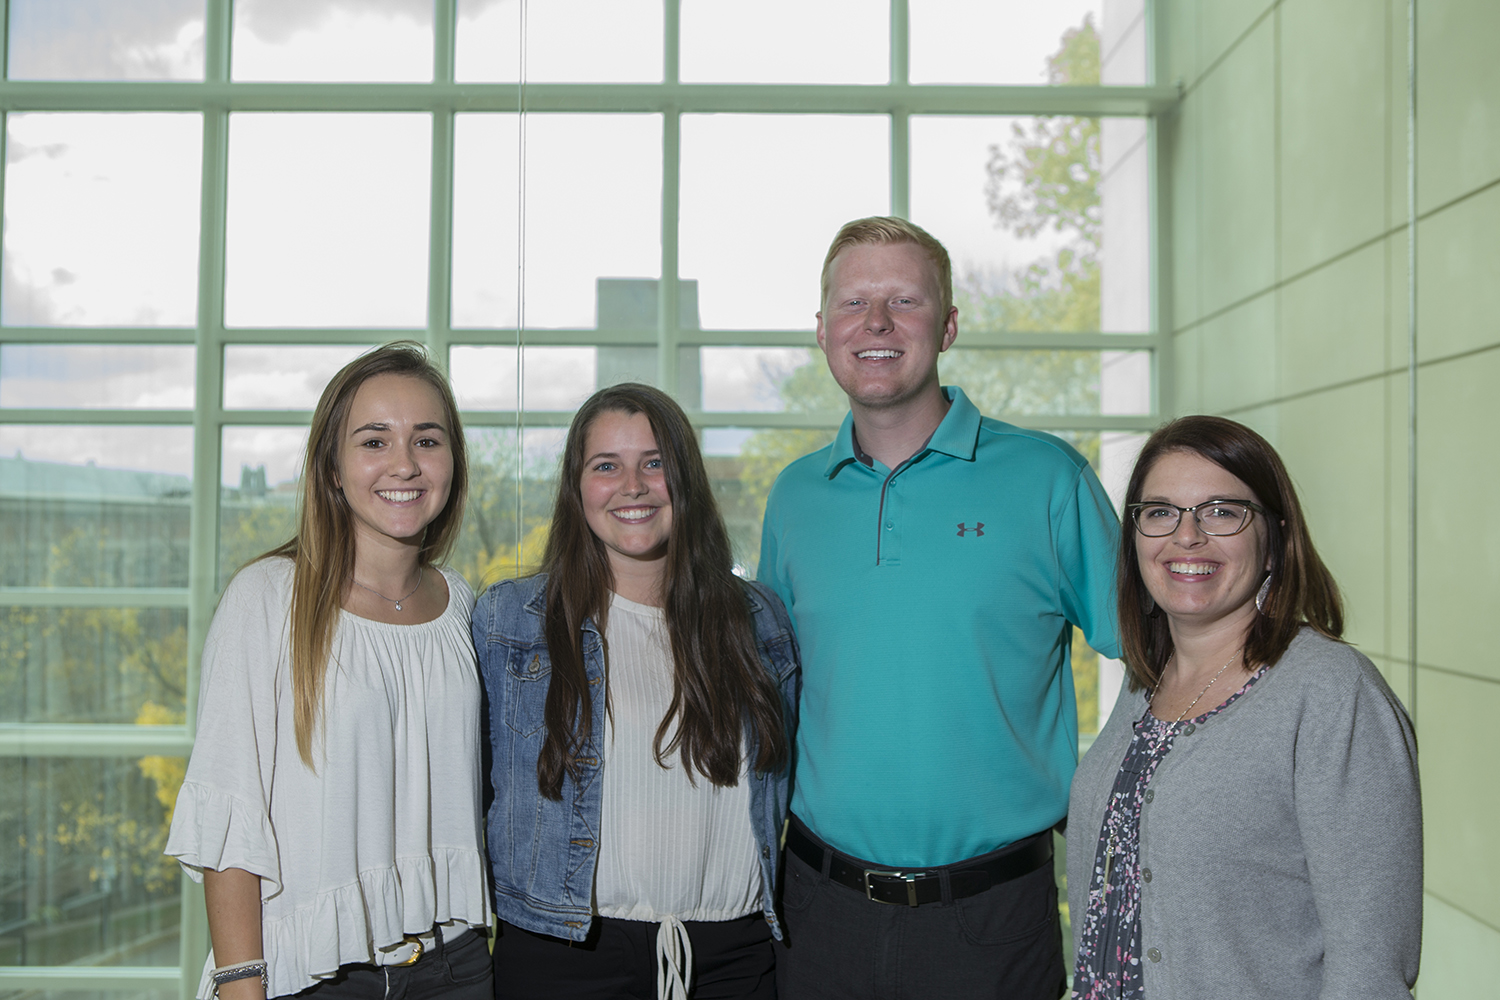 Peer advisors (from left) junior Magdalena Caro, senior Caden Crandall, senior Melanie Taylor, and Senior Director of Operations for the Pomeranz Career Center Angi McKie pose for a portrait in the Pomeranz Center on Oct. 9, 2018. The Pomeranz Career Center helps students work on their resumes, network within their fields, and plan a career path for after graduation.